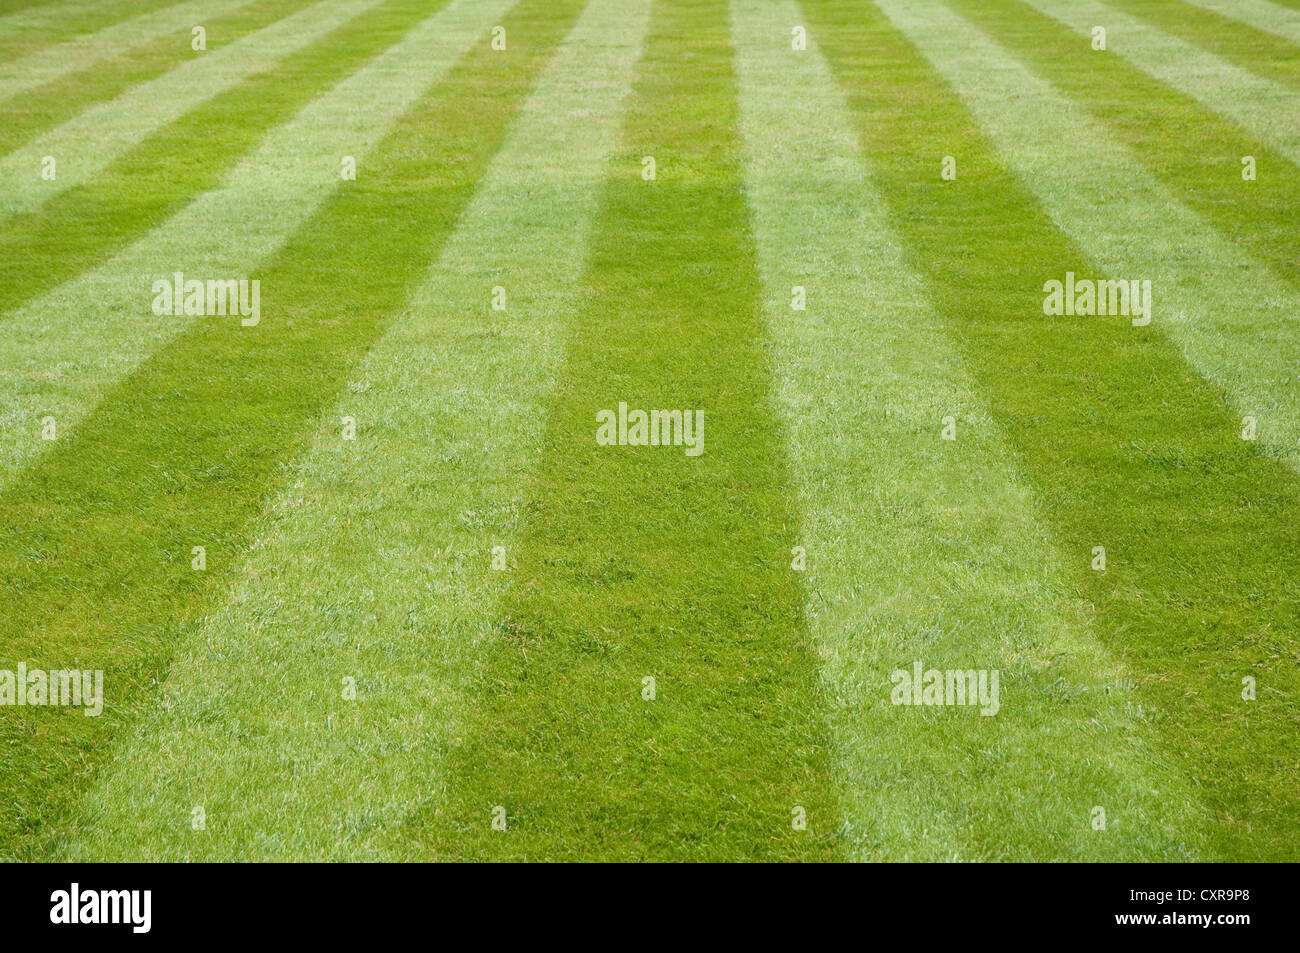 Stripes on a Lawn. - Stock Image